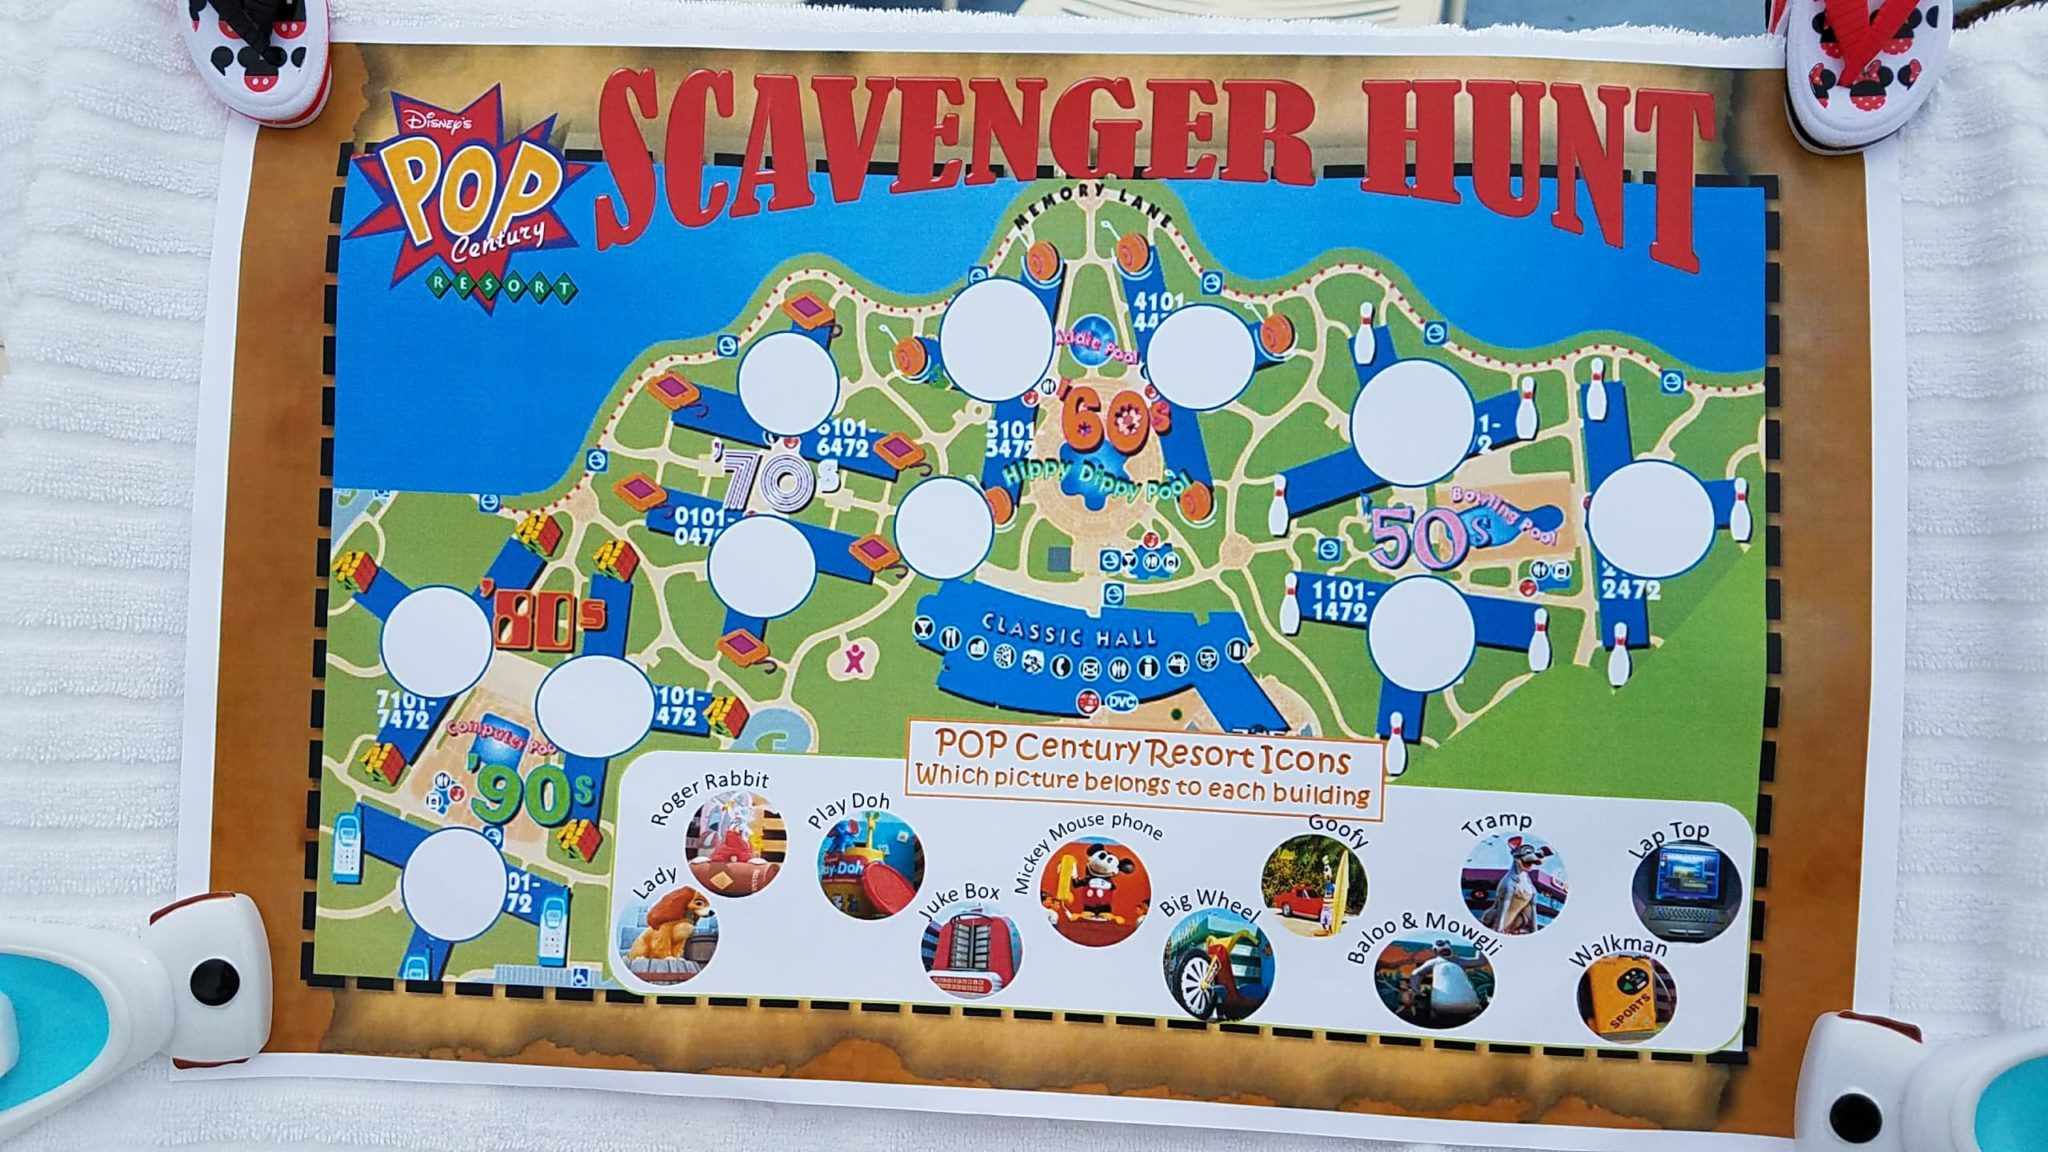 Pop Century Resort Scavenger Hunt Features Groovy Family Fun